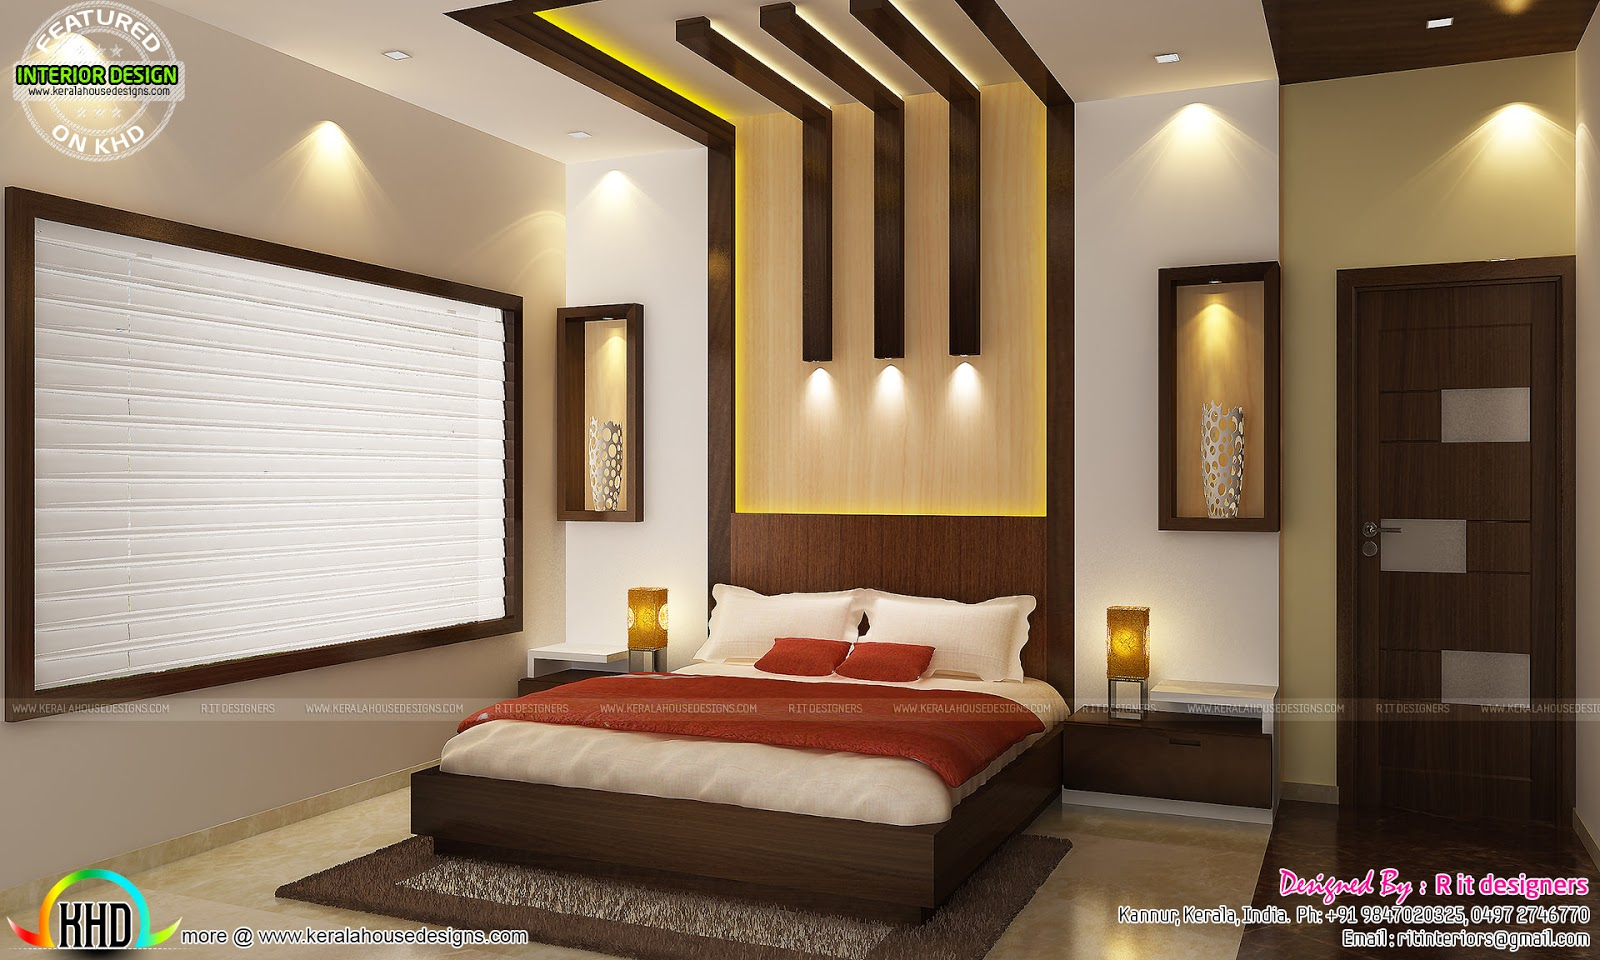 Kitchen living bedroom dining interior decor kerala for House design interior decorating